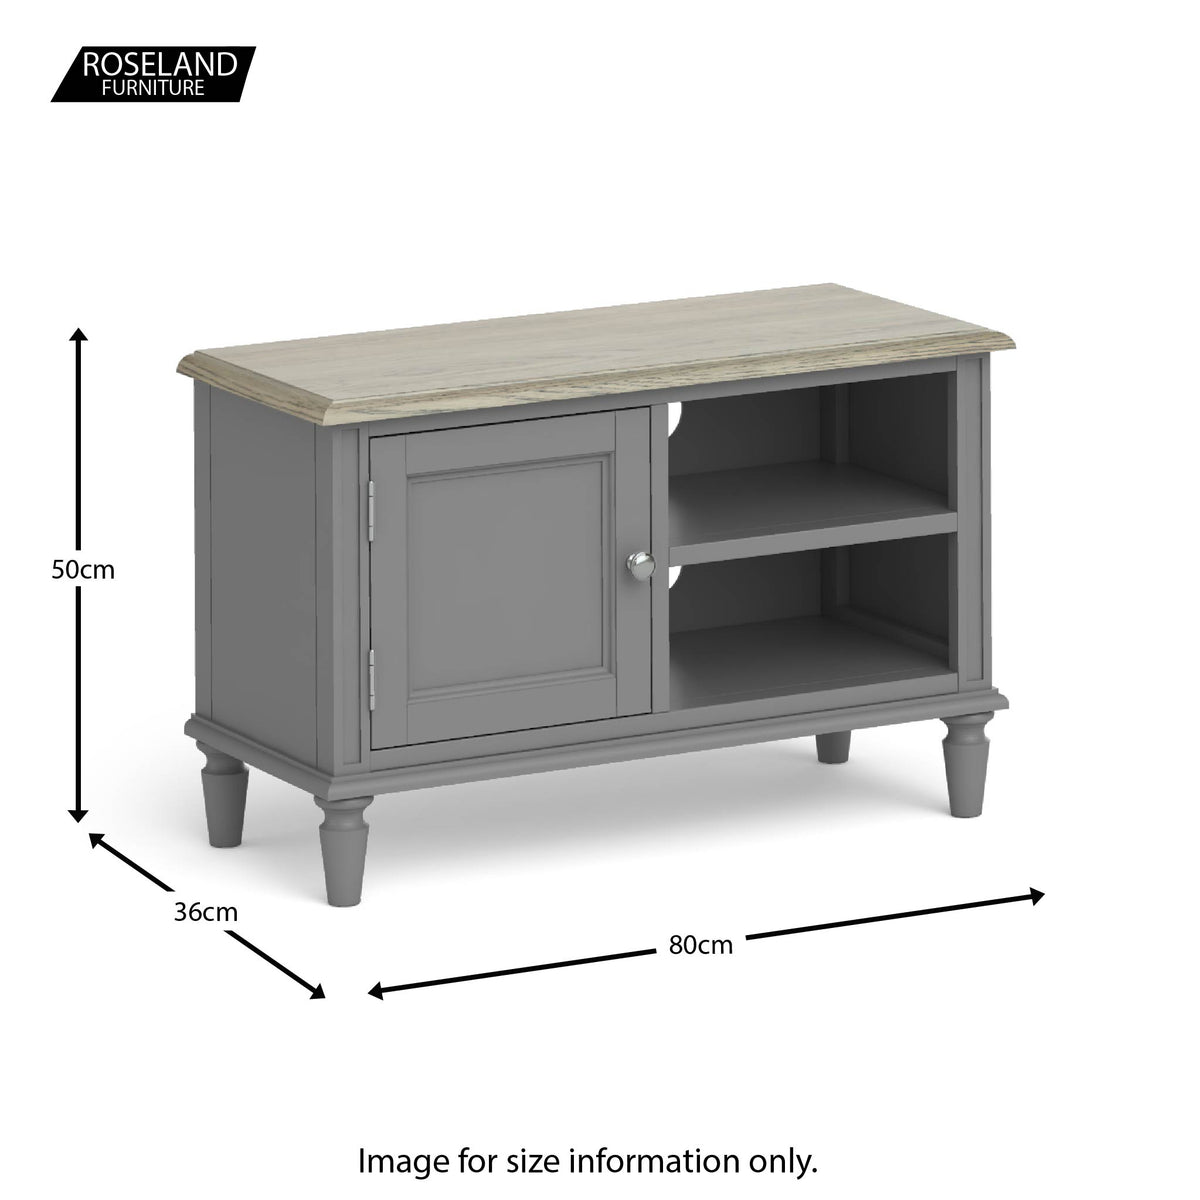 The Mulsanne Grey French Wooden Television Stand with Storage Cabinet from Roseland Furniture